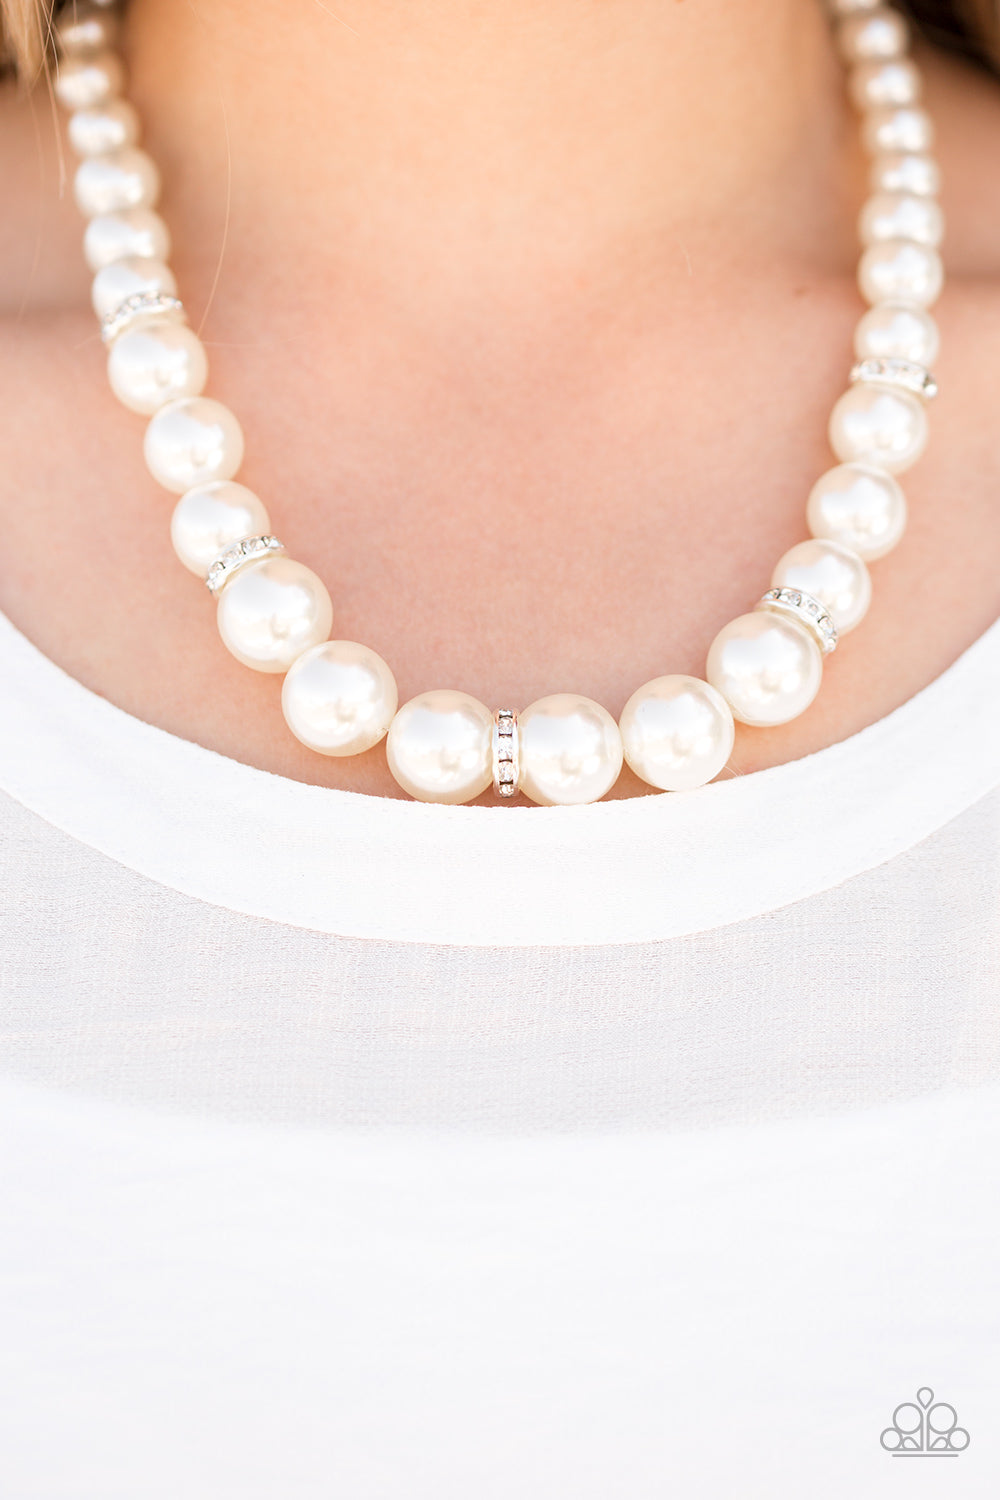 Gradually increasing in size, luminescent pearls trickle below the collar for a classic look. Encrusted in dazzling white rhinestones, glittery rings are sprinkled between the pearls for a timeless finish. Features an adjustable clasp closure.  Sold as one individual necklace. Includes one pair of matching earrings.  Always nickel and lead free.